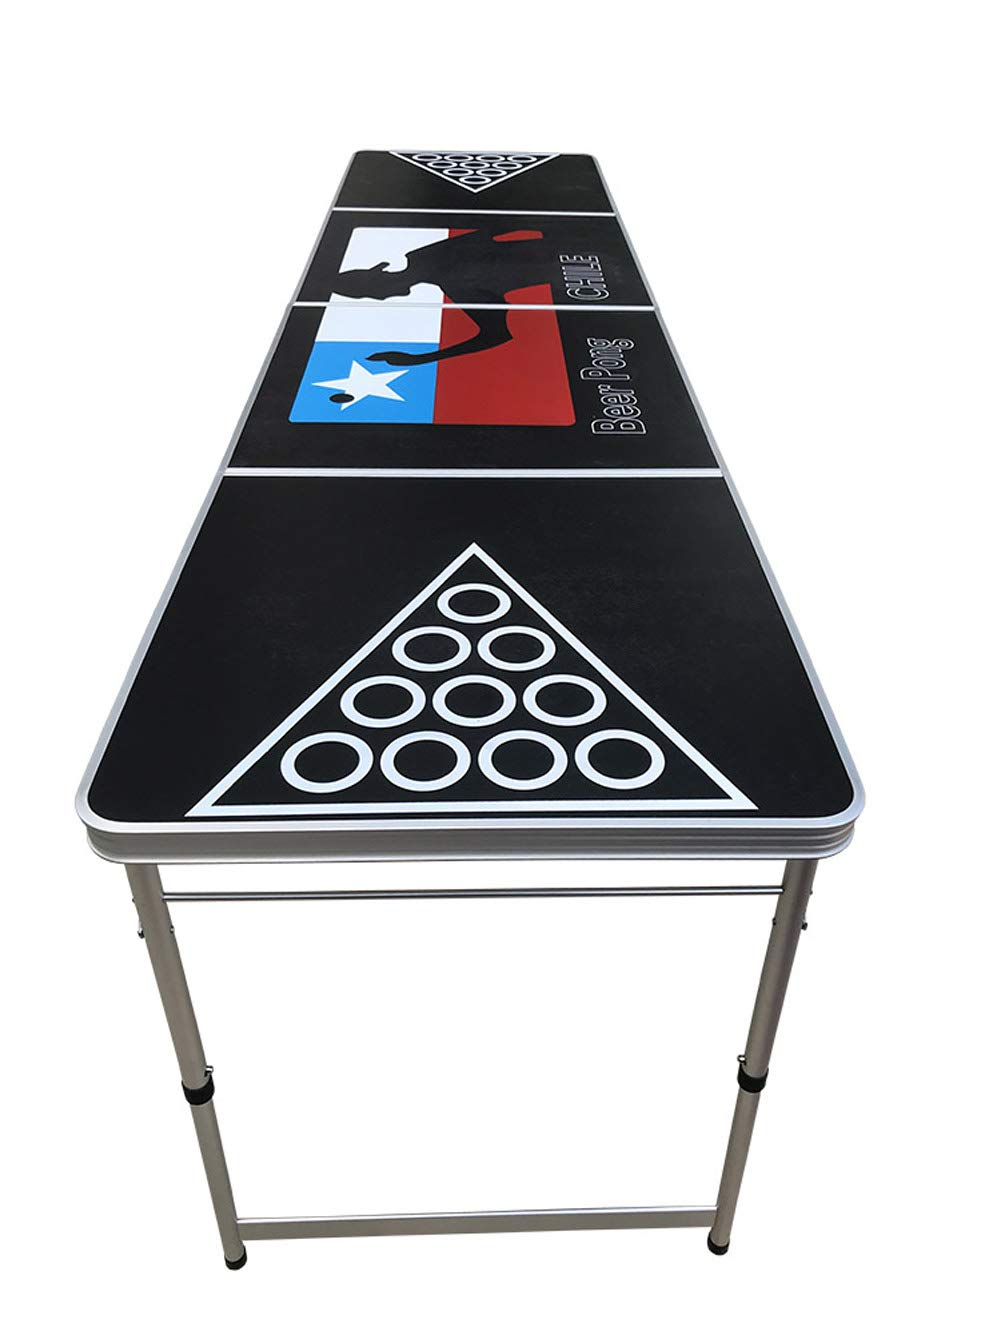 BlueSpace Beer Pong Table 8ft Folding Party Pong Table Set for Drinking Games Outdoor Indoor Picnic Portable Tables Aluminum